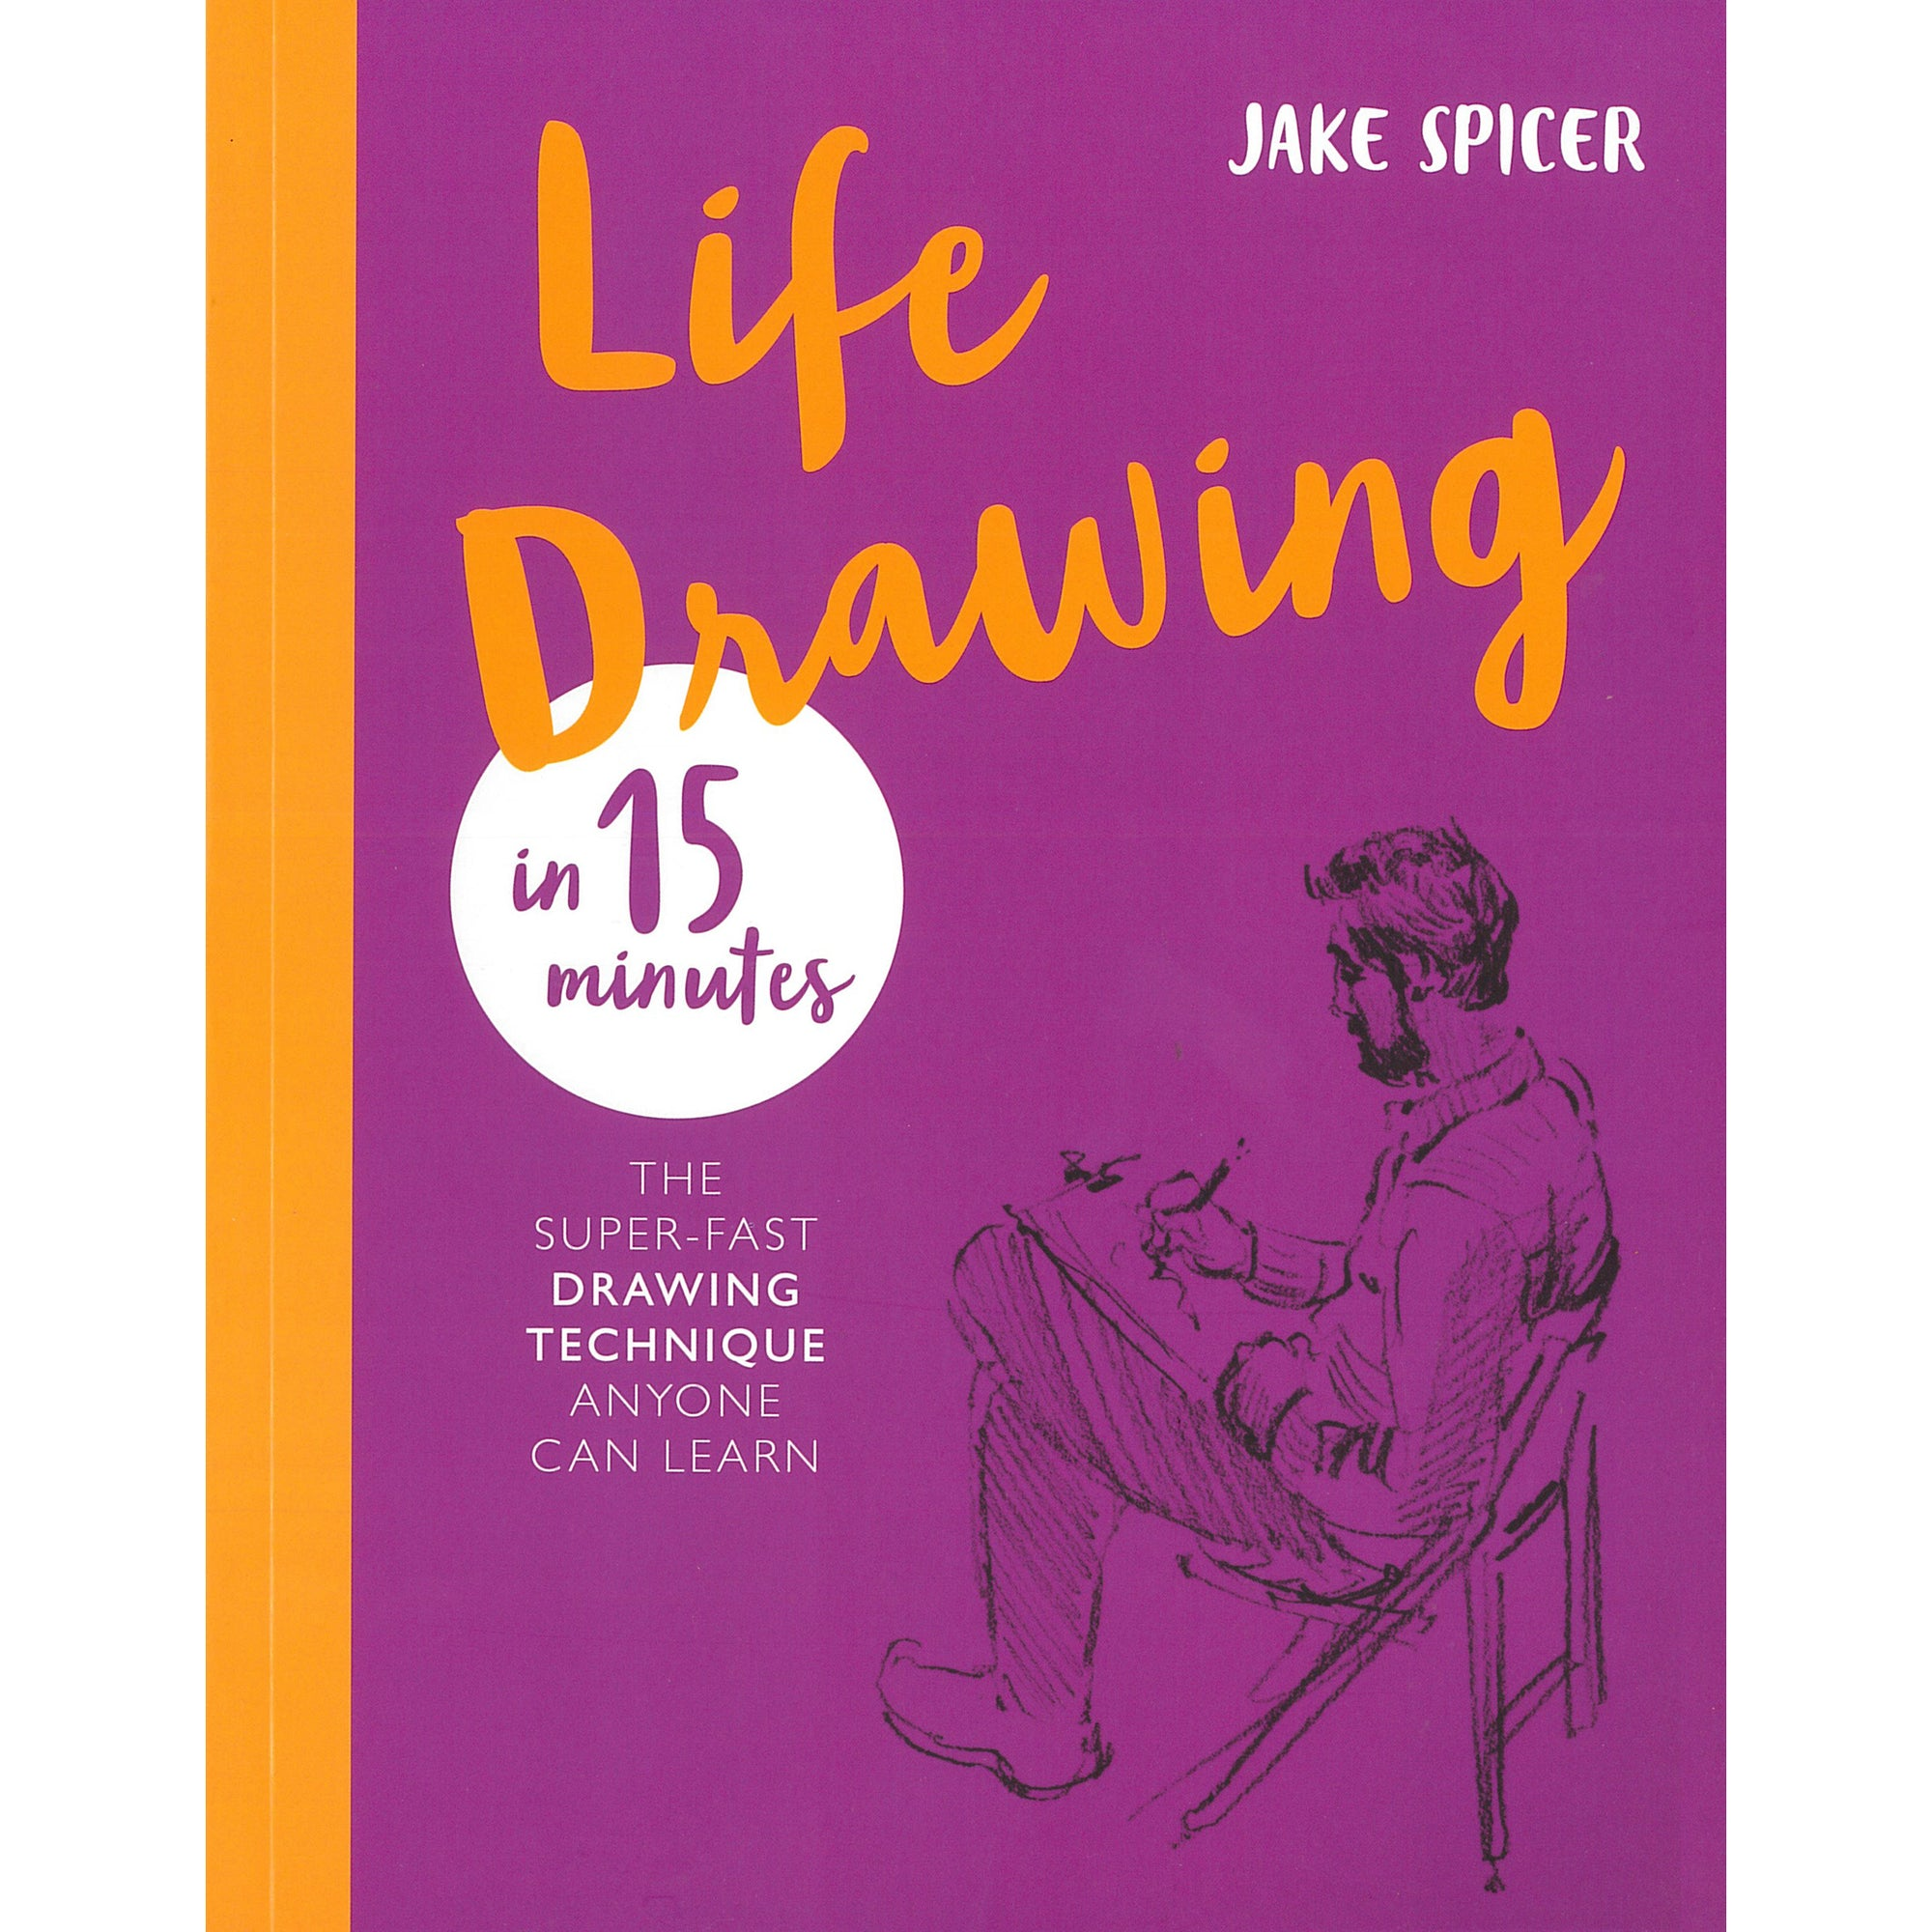 Life Drawing in 15 Minutes: The Super-fast Drawing Techinque Anyone Can Learn